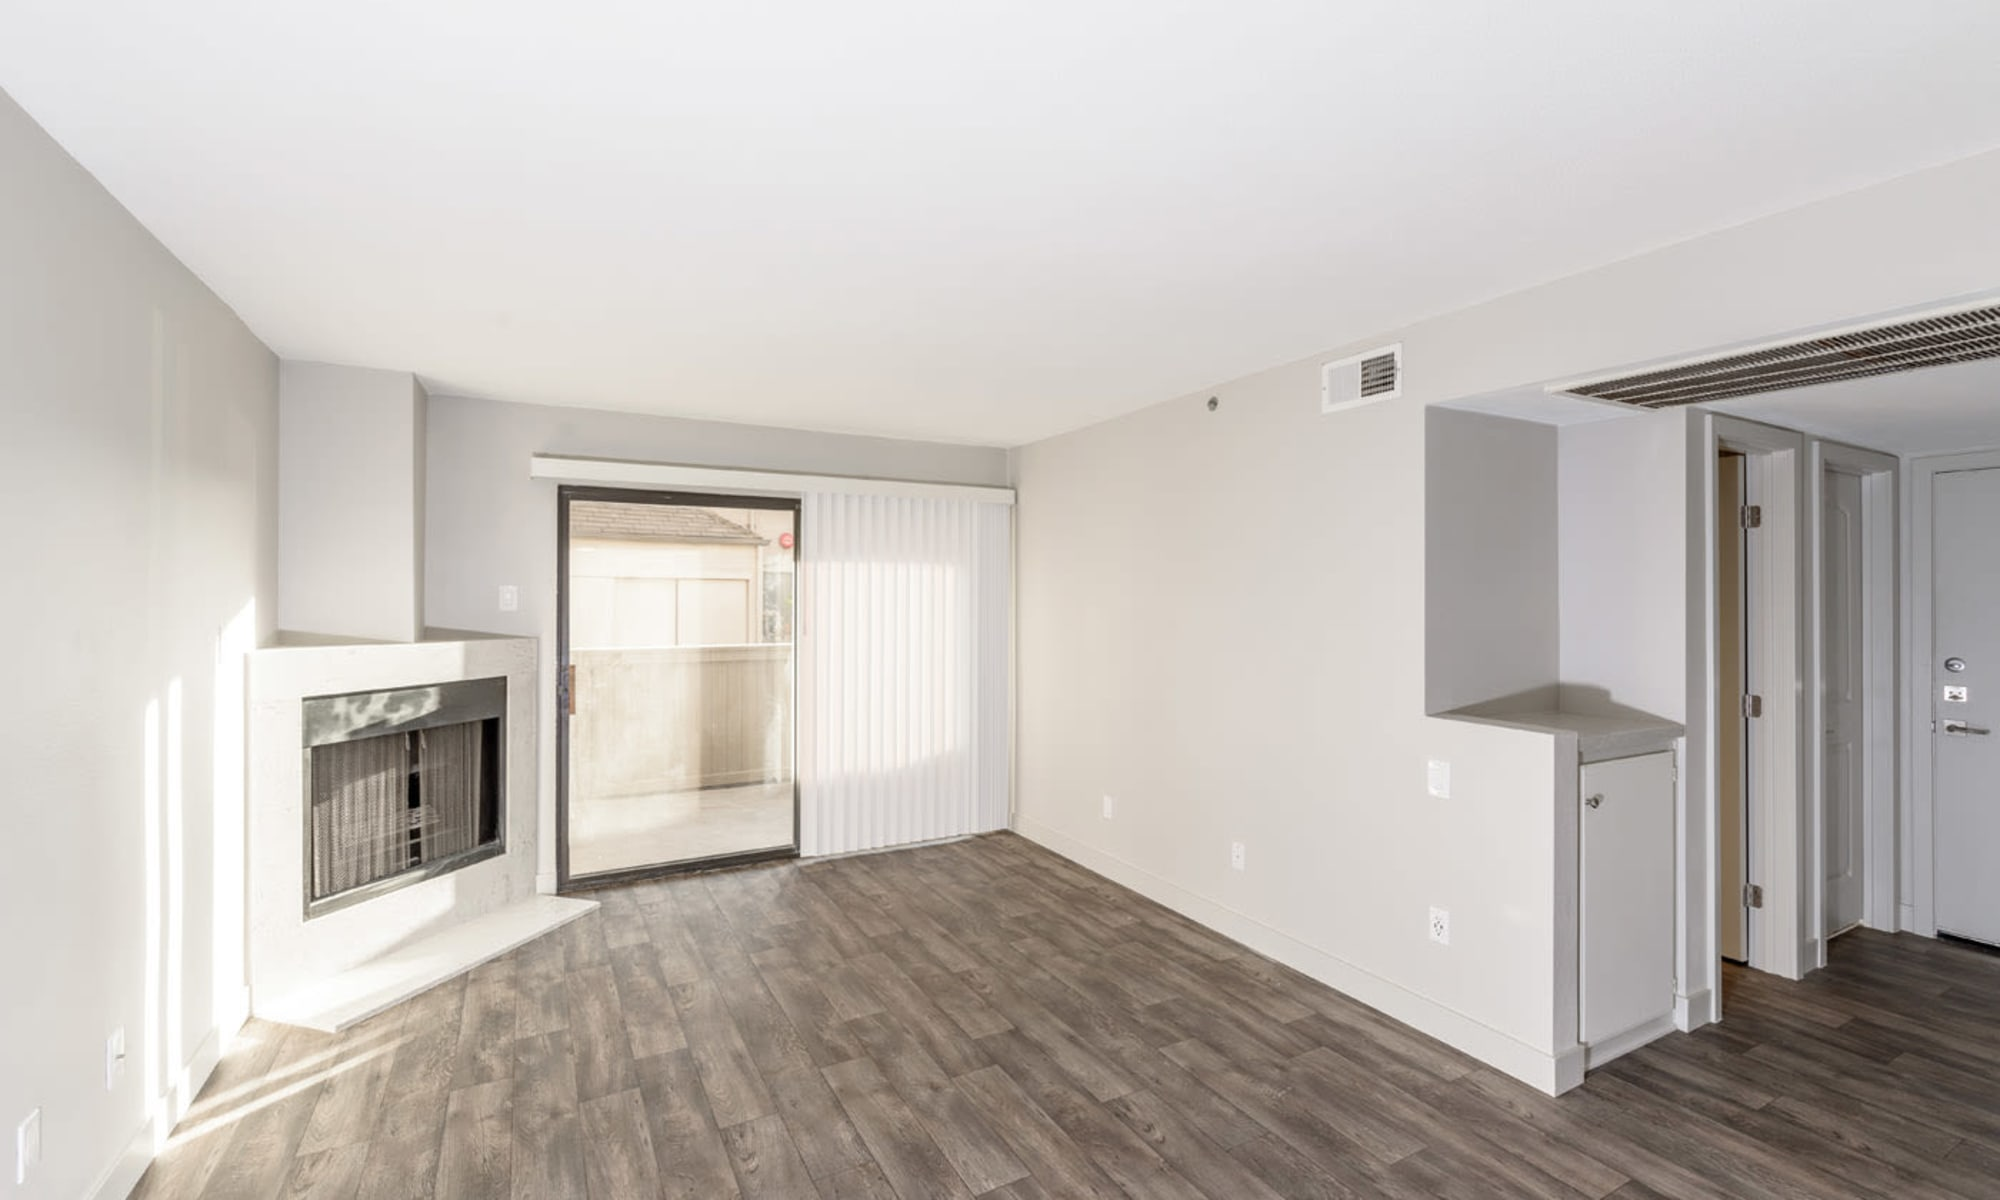 Hardwood-style flooring and ceiling fan in the dining and kitchen areas in a model apartment at Sendero Huntington Beach in Huntington Beach, California